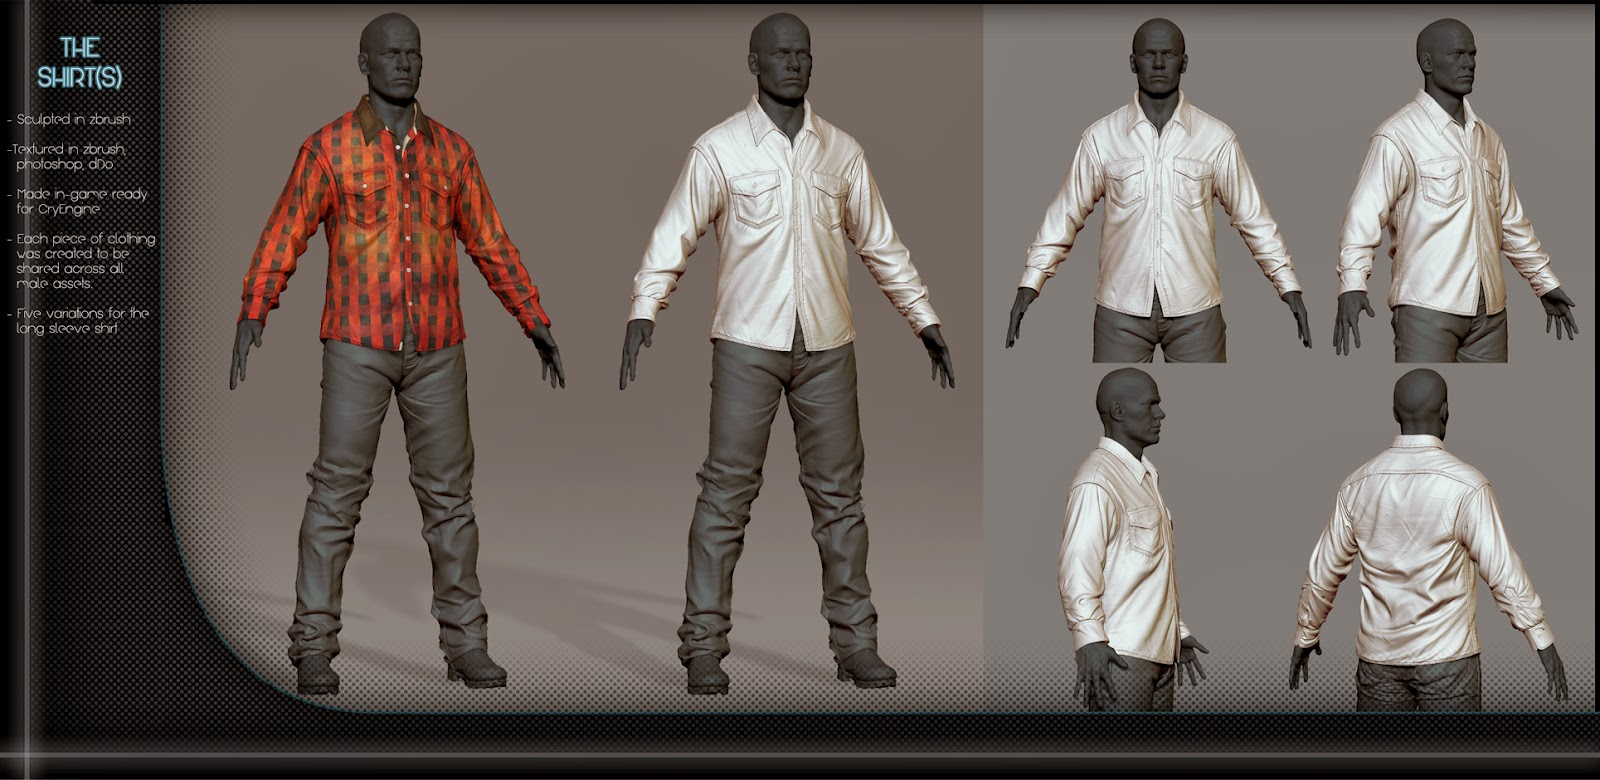 Male Clothing Designer Game piece of clothing was made